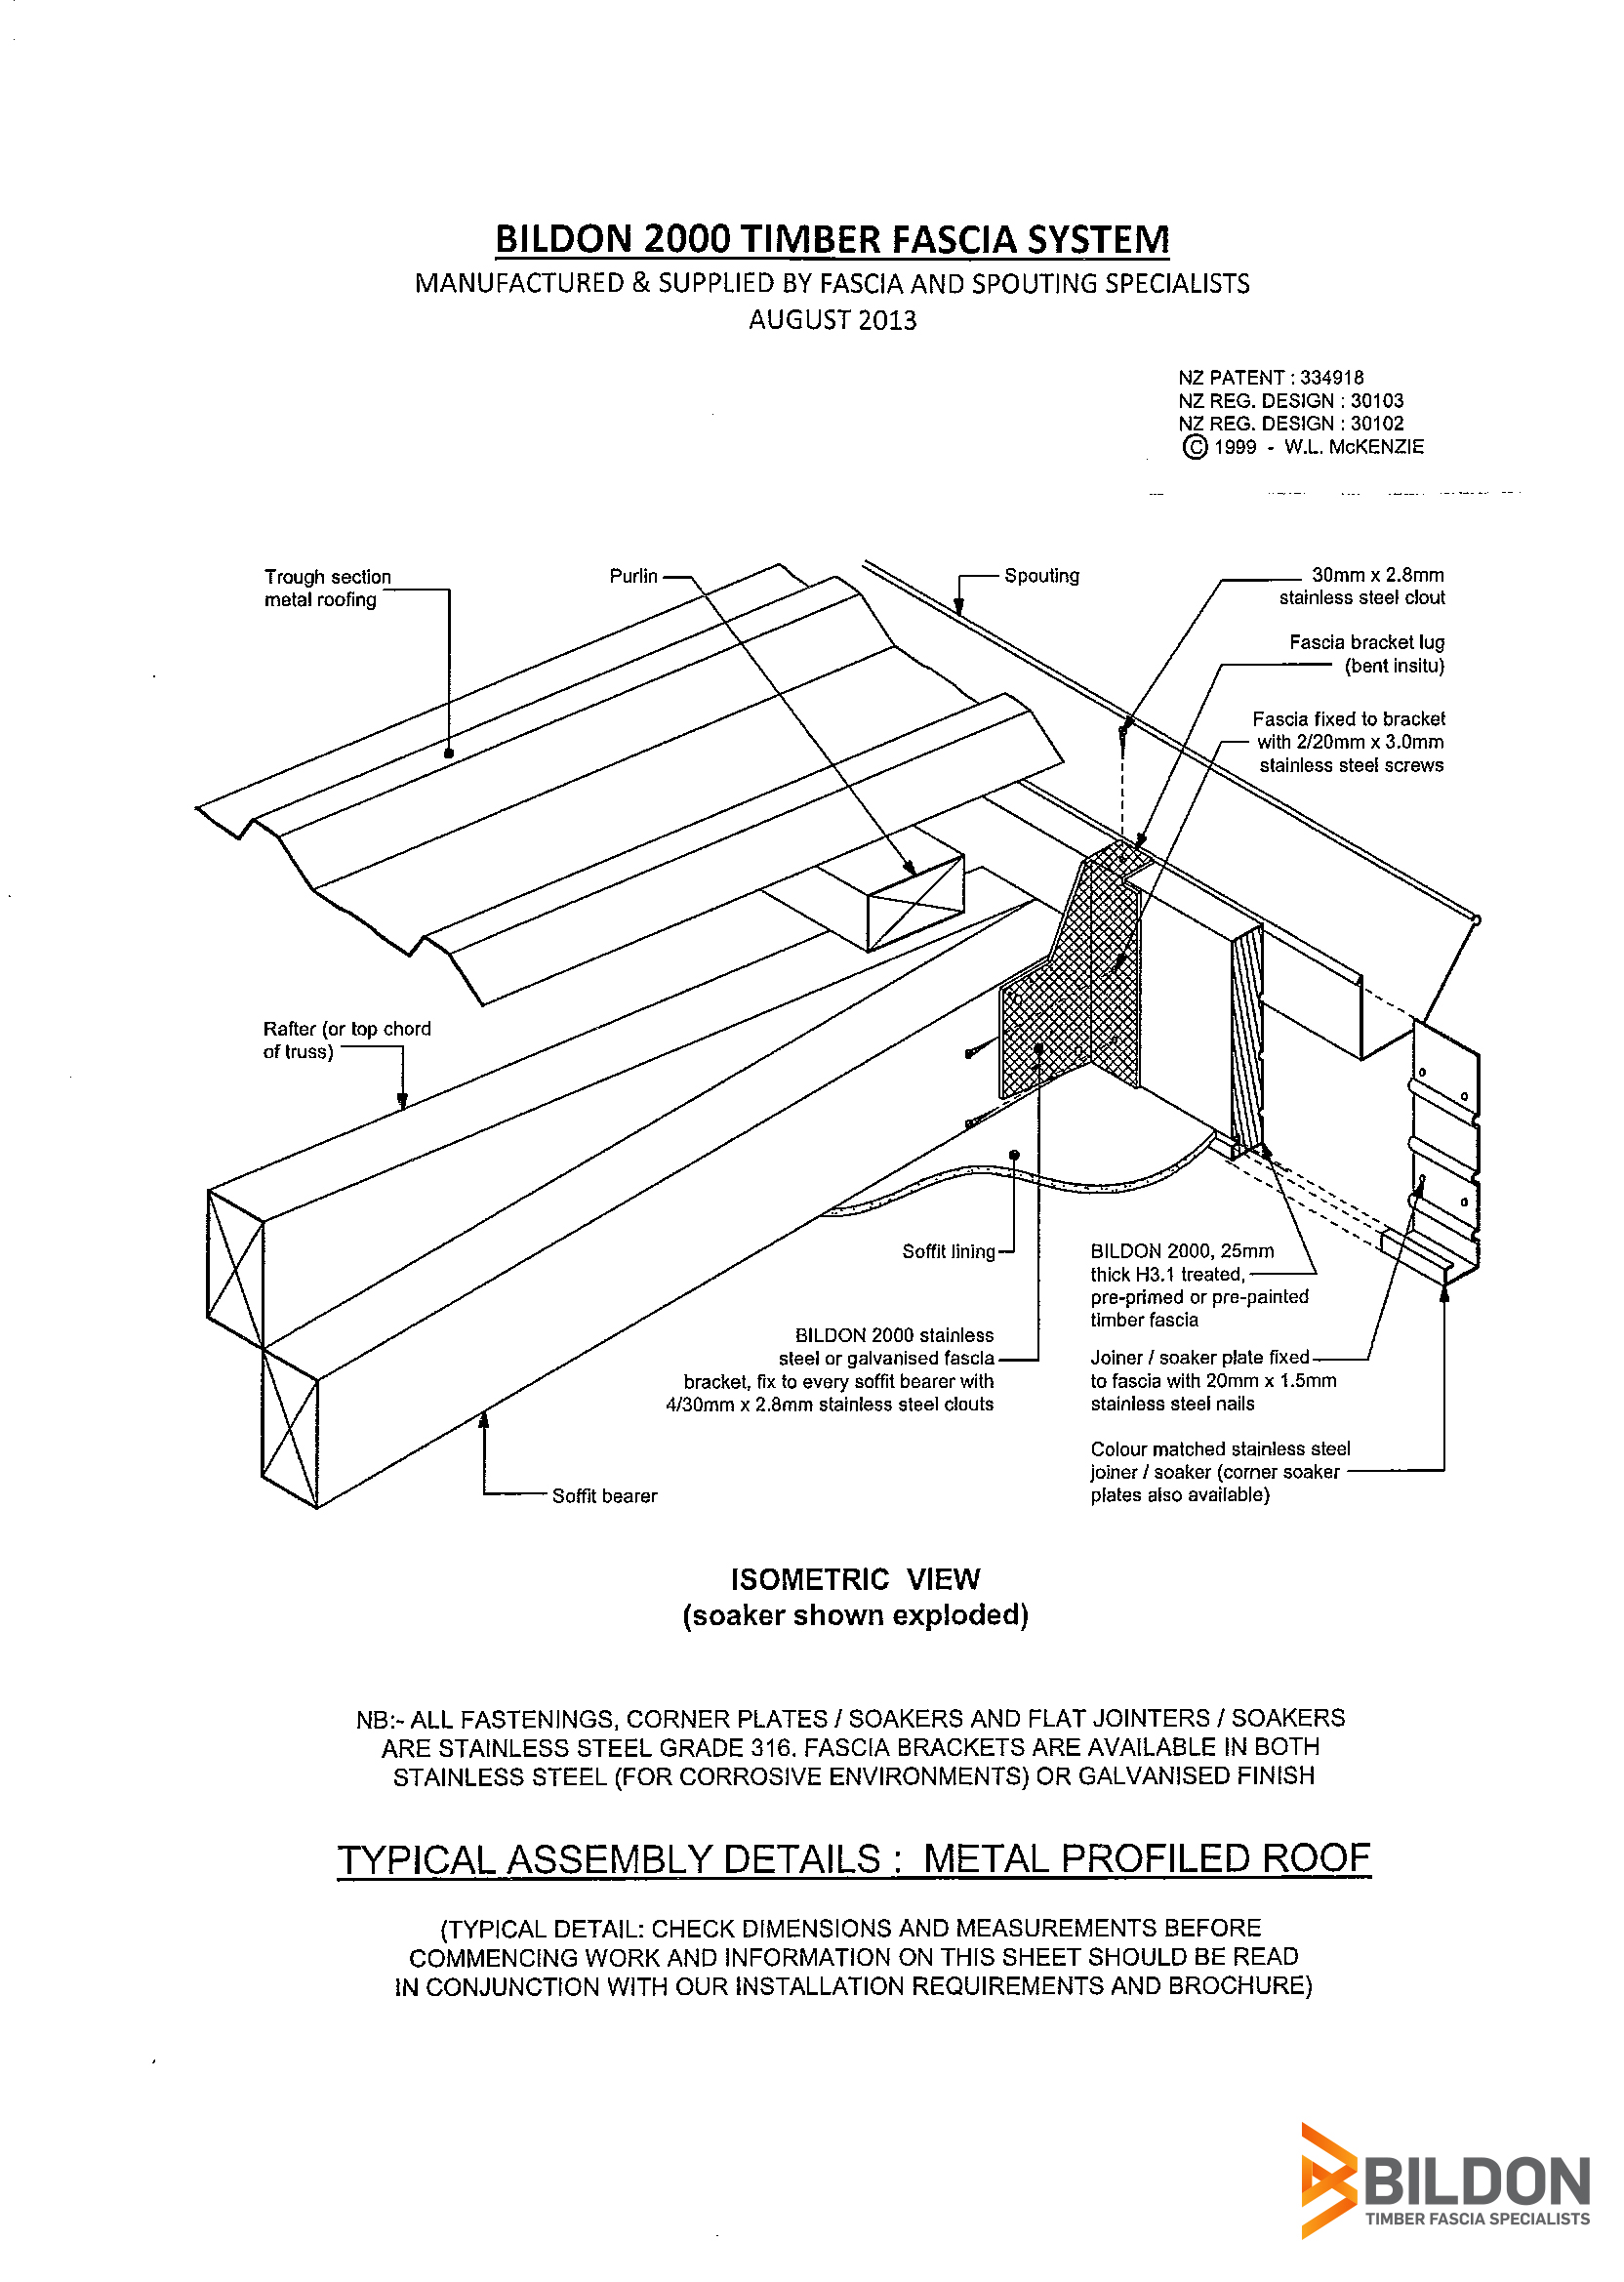 Typical Assembly Details - Metal Profiled Roof.jpg